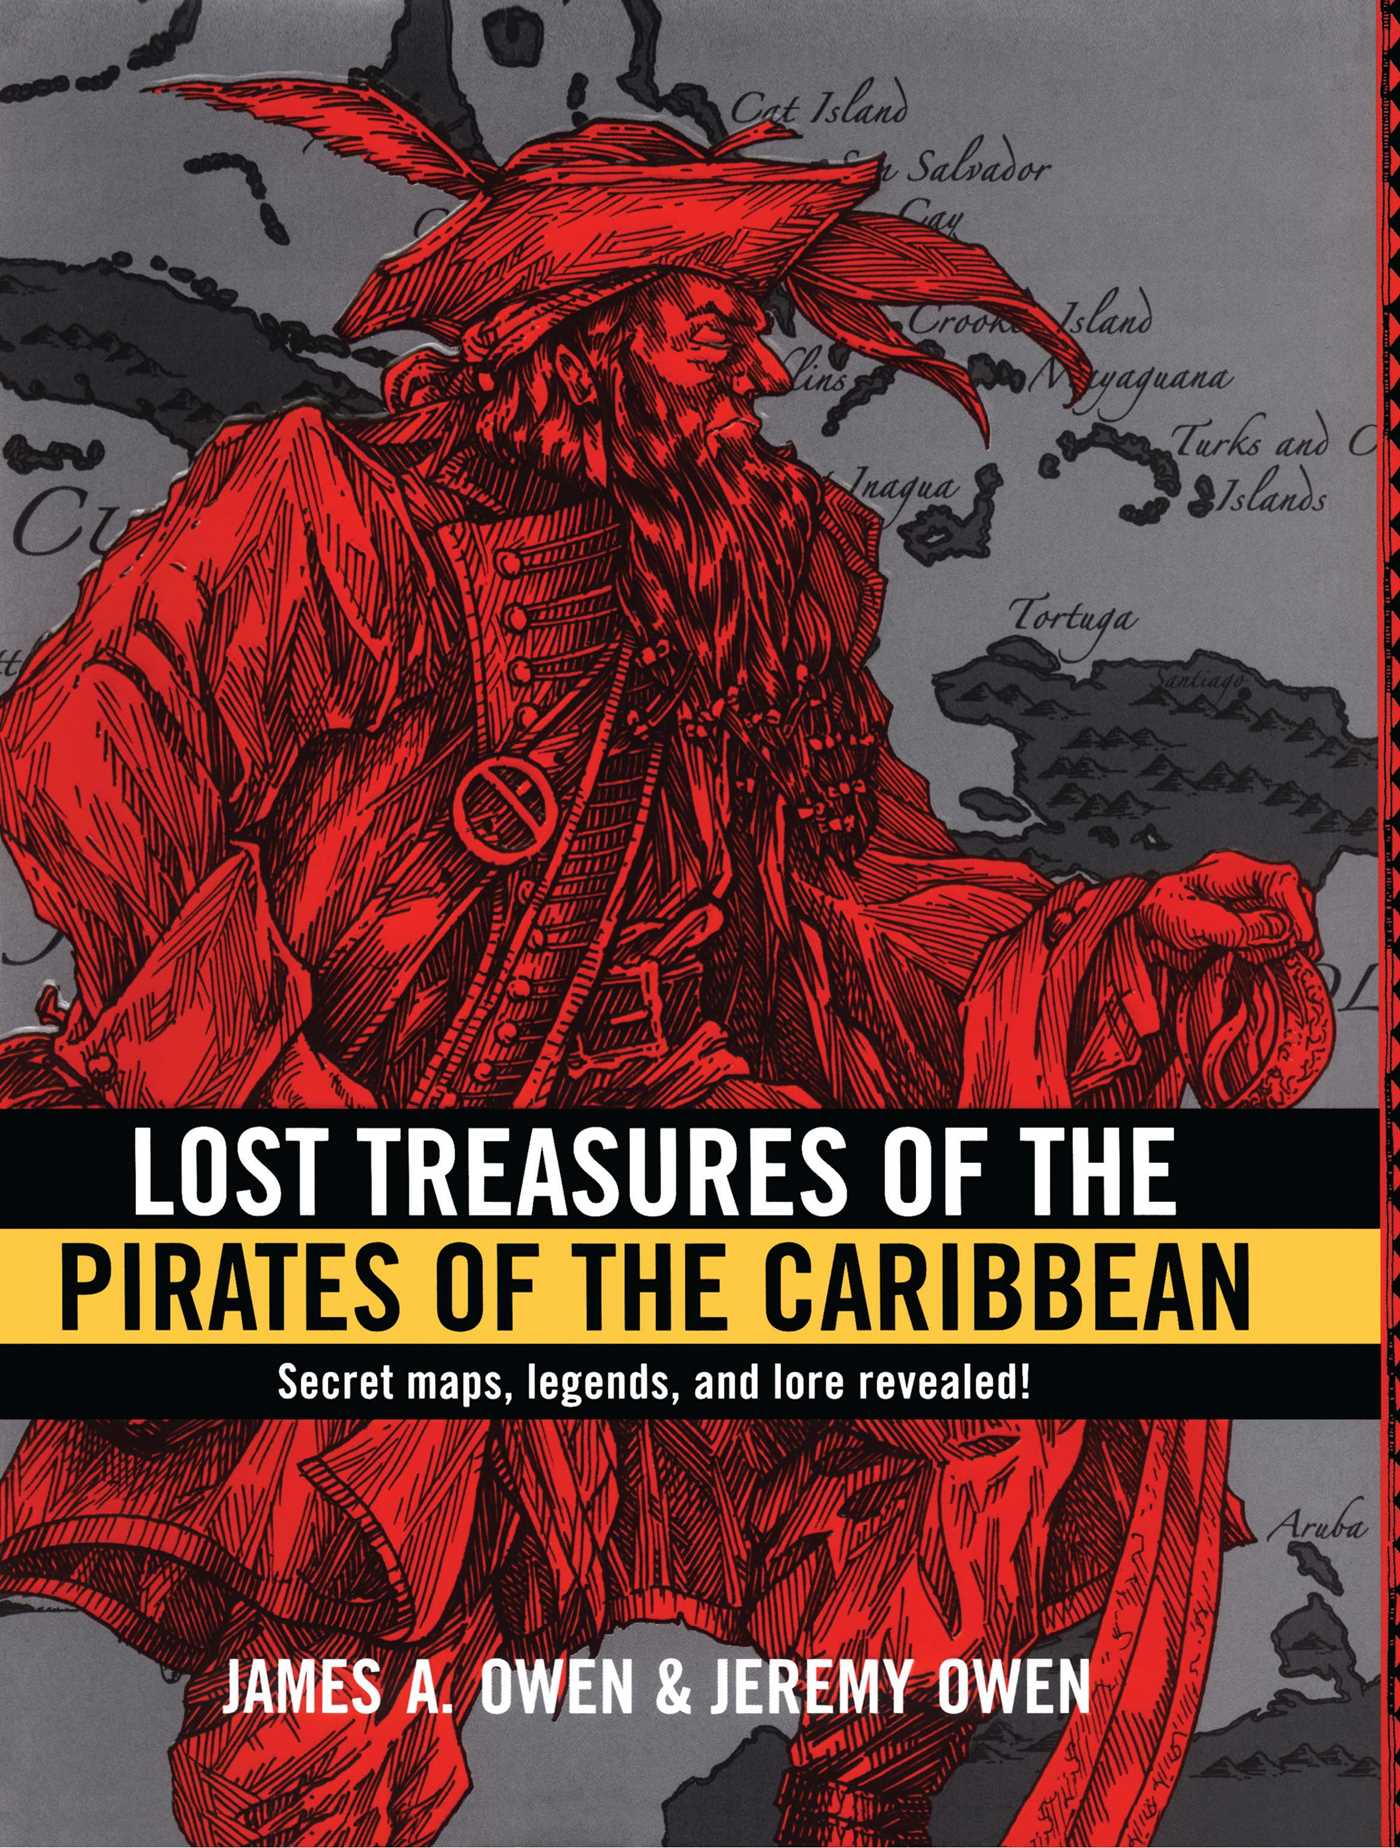 Lost-treasures-of-the-pirates-of-the-caribbean-9781442430938_hr